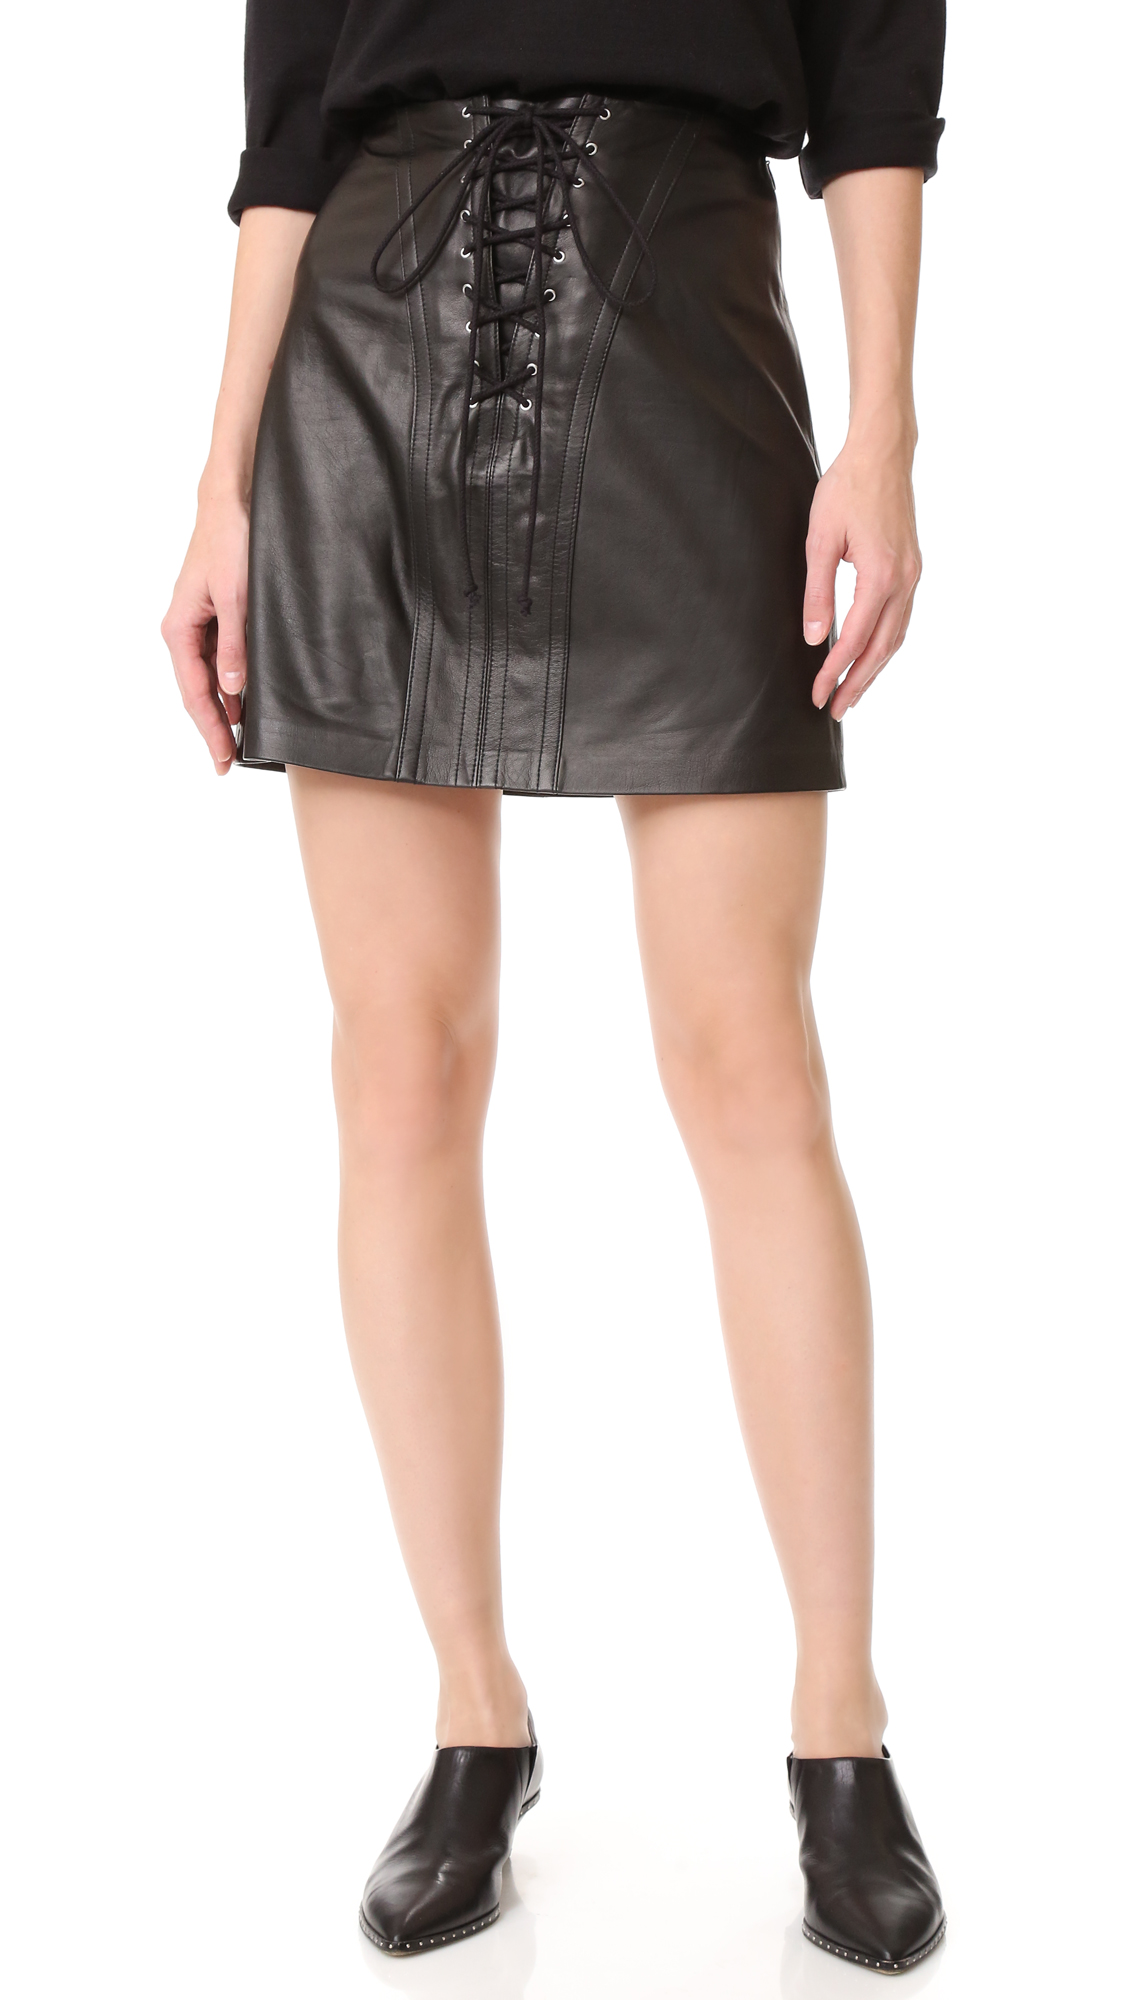 Lace up detailing lends a sexy, corset inspired element to this supple leather Derek Lam 10 Crosby miniskirt. Hidden side zip. Lined. Fabric: Leather. Shell: 100% sheepskin. Lining: 100% polyester. Leather clean. Imported, China. Measurements Length: 17.25in / 44cm Measurements